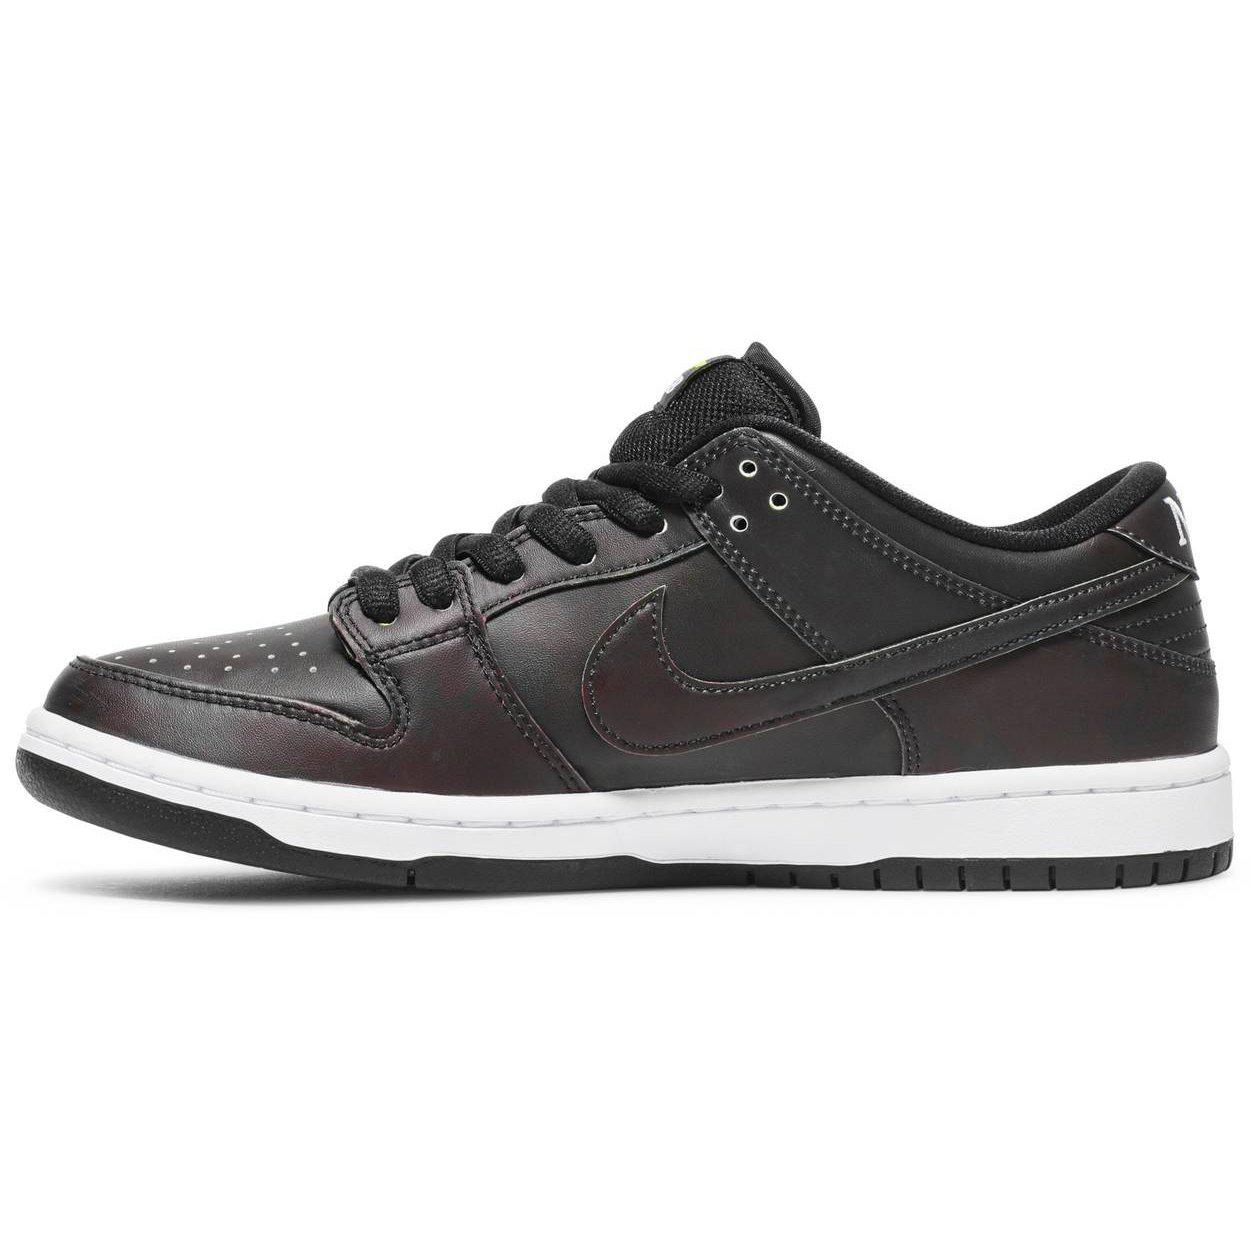 Nike Civilist x Dunk Low Pro SB QS 'Thermography' | Waves Never Die | Nike | Sneakers